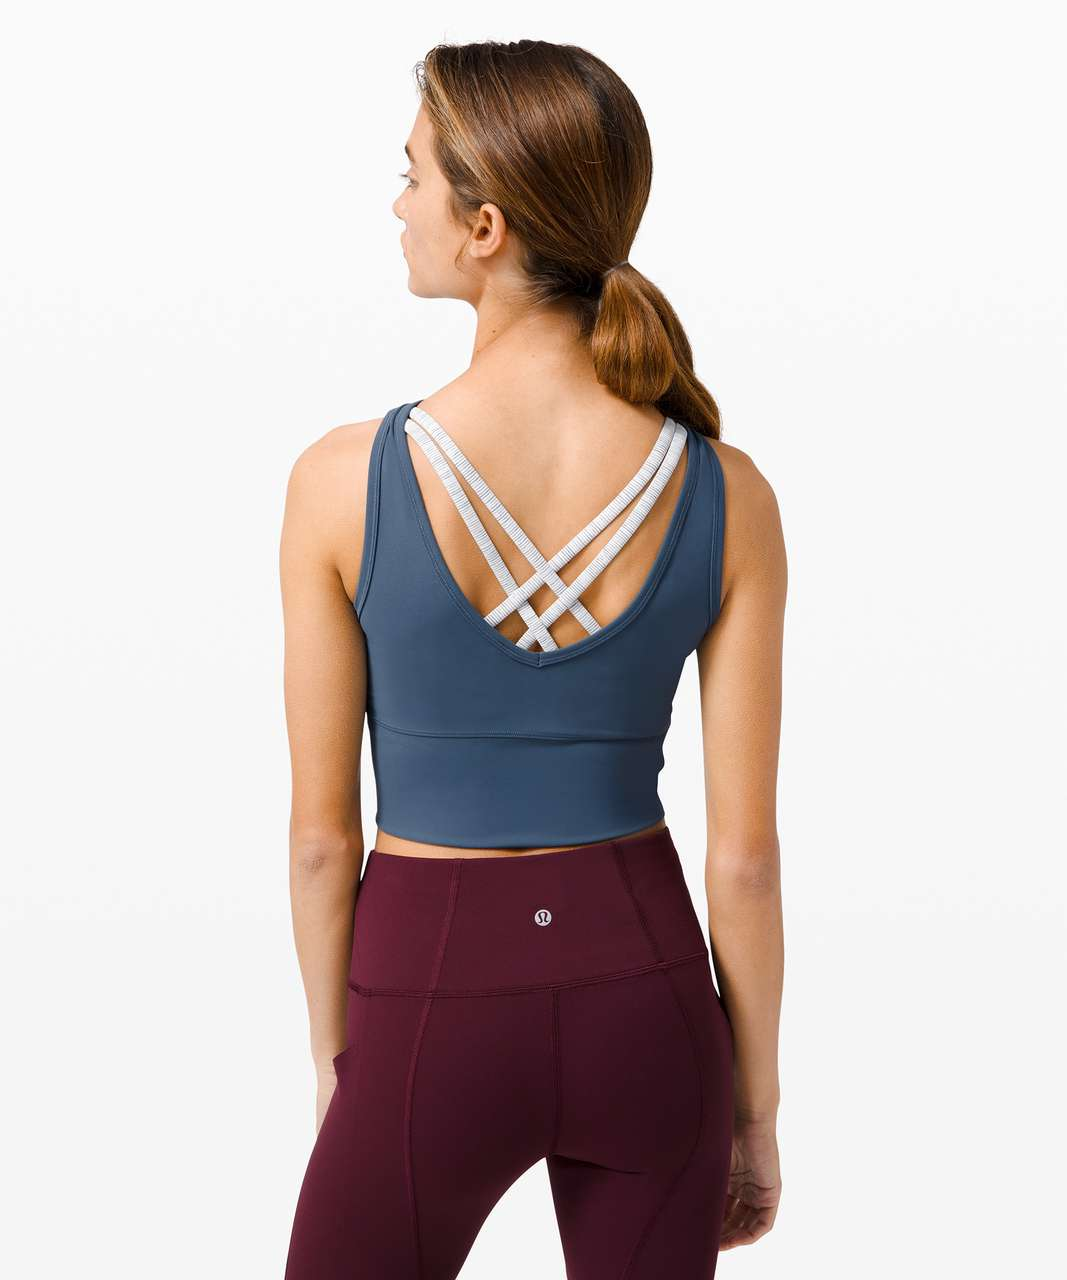 Lululemon Power Pivot Tank *Everlux - Iron Blue